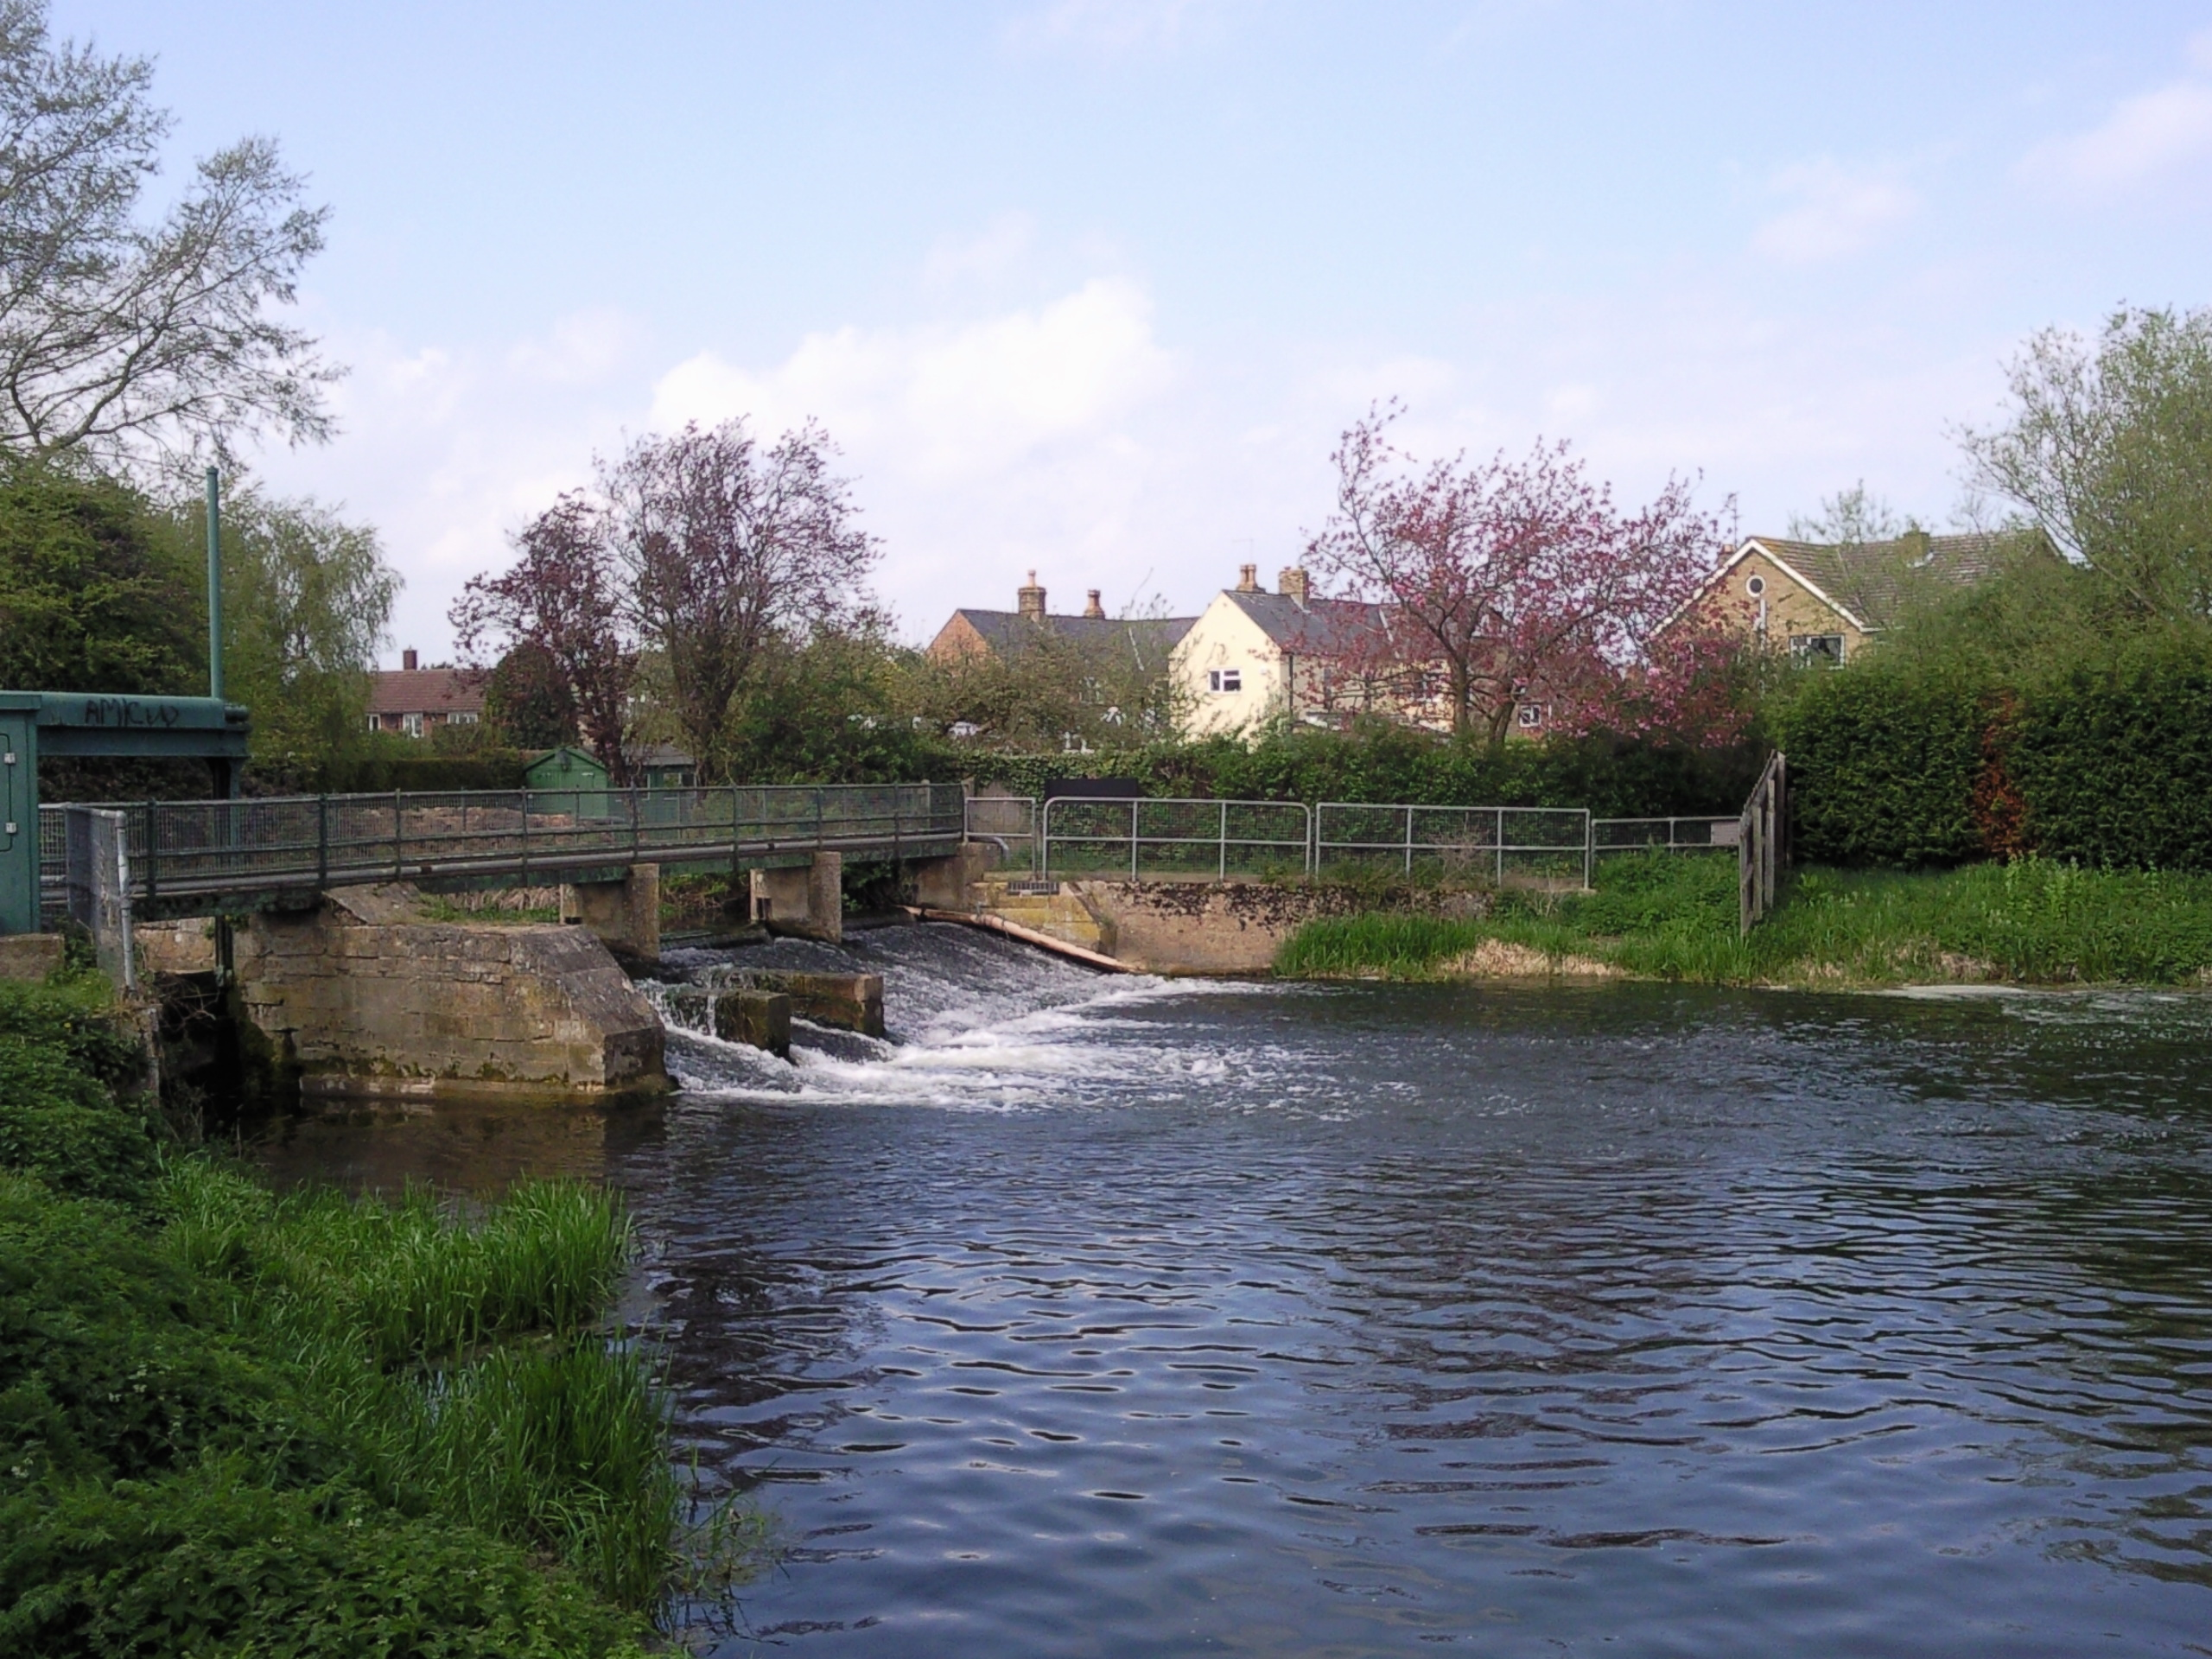 The remains of the low locks at Deeping St James